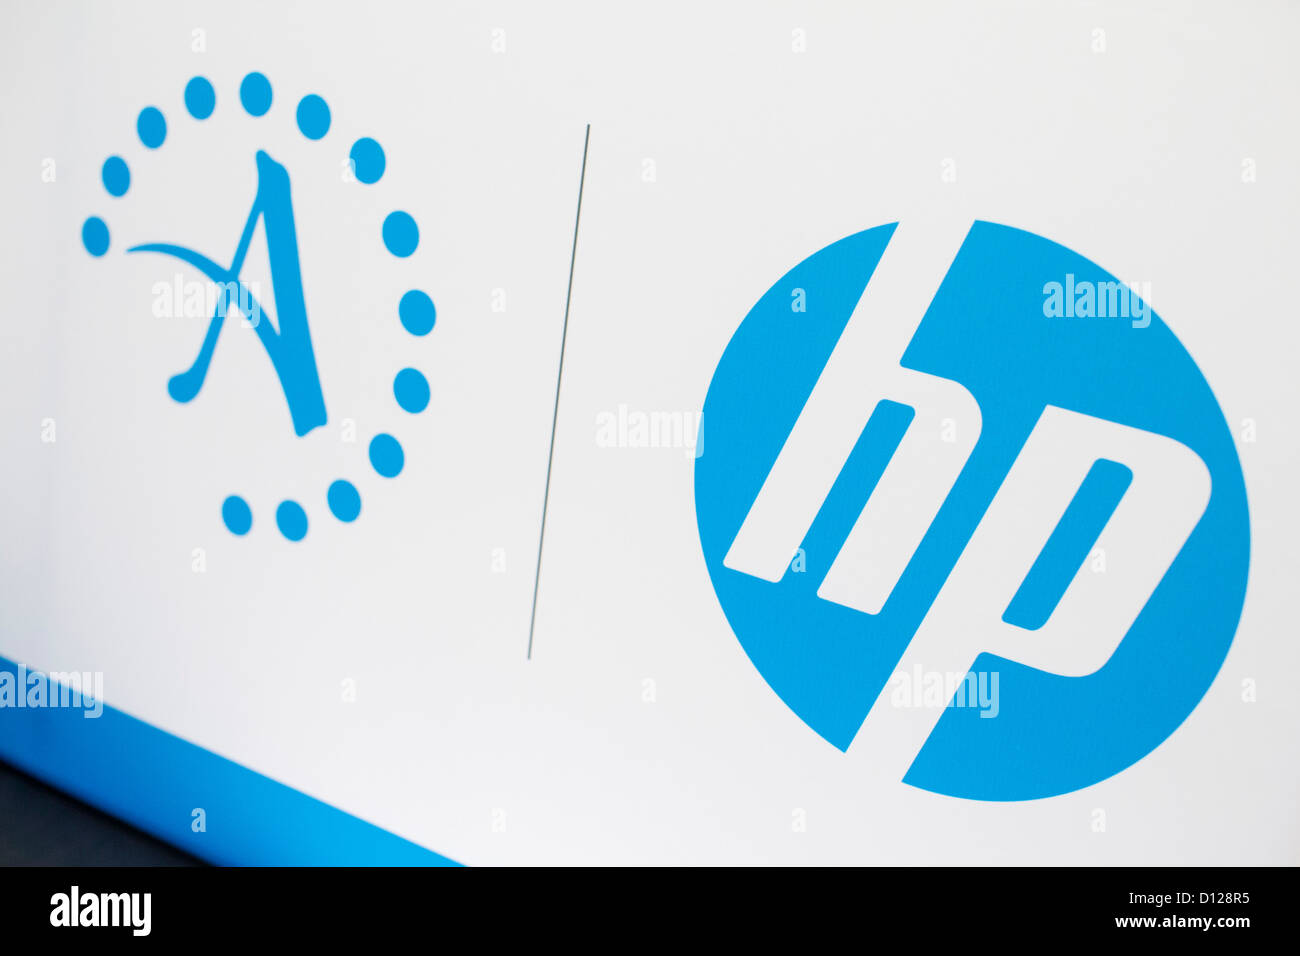 Hewlett Packard And Autonomy Logos Stock Photo Royalty Free Image